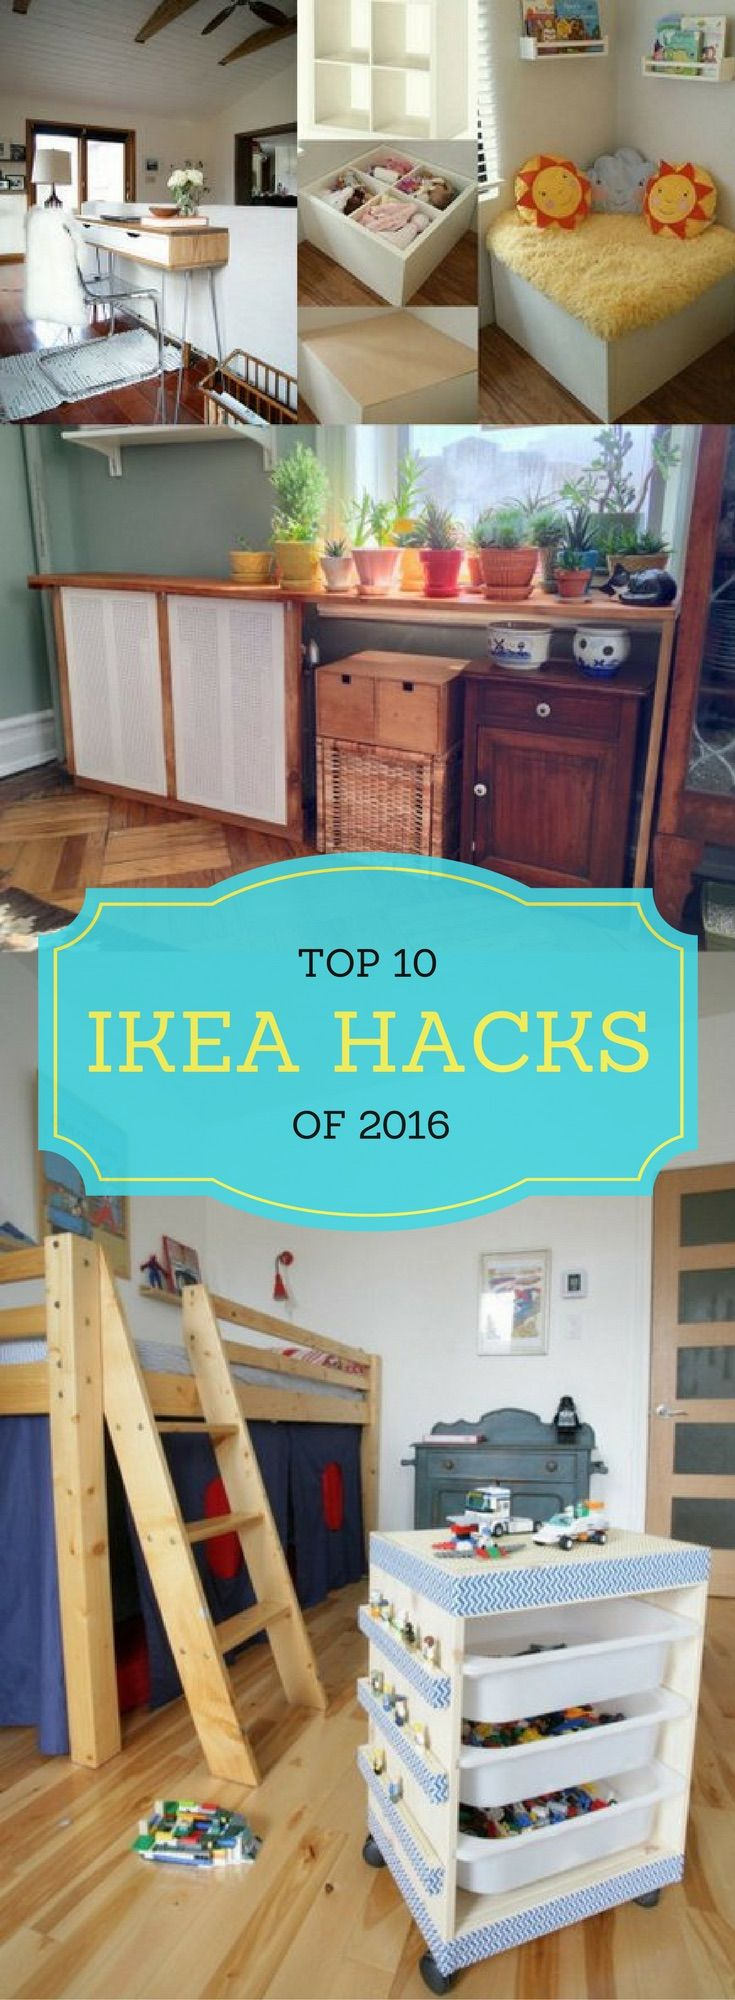 Get inspired! 10 of the best IKEA hacks of 2016 from IKEAhackers.net.